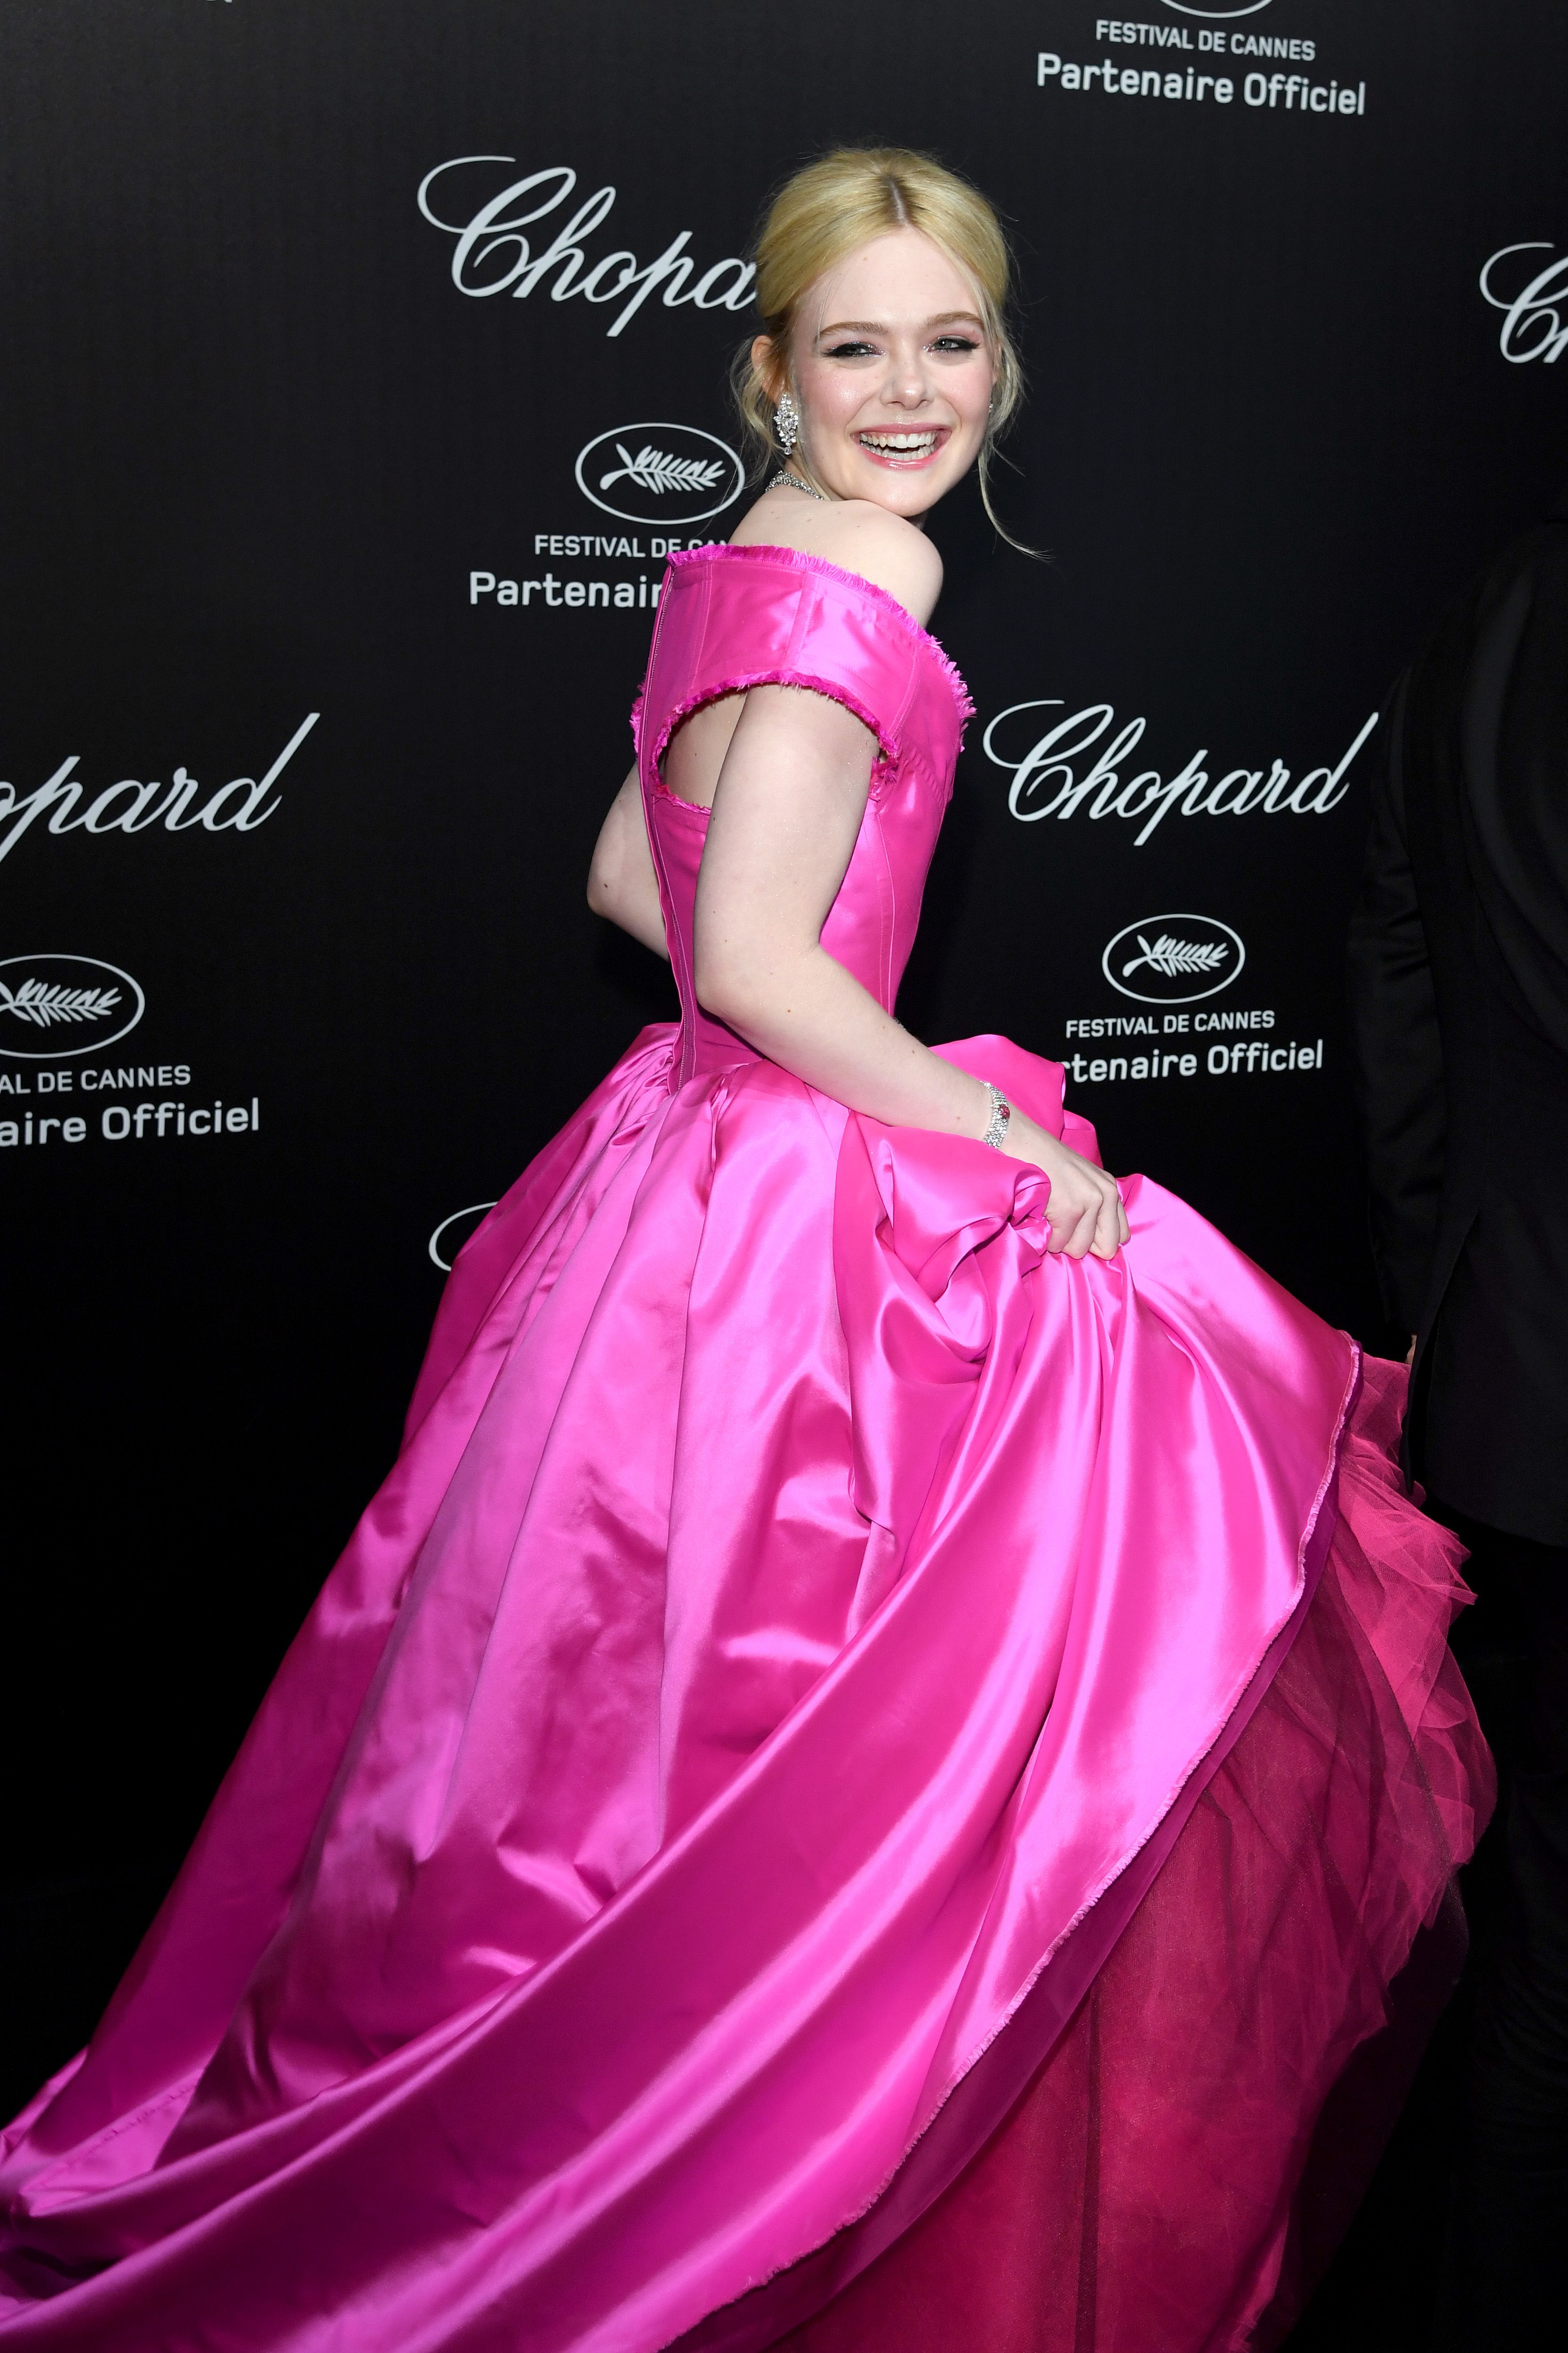 78469967b5f7c Elle Fanning Attends Cannes Film Festival Wearing Pink Vivienne Westwood  Gown